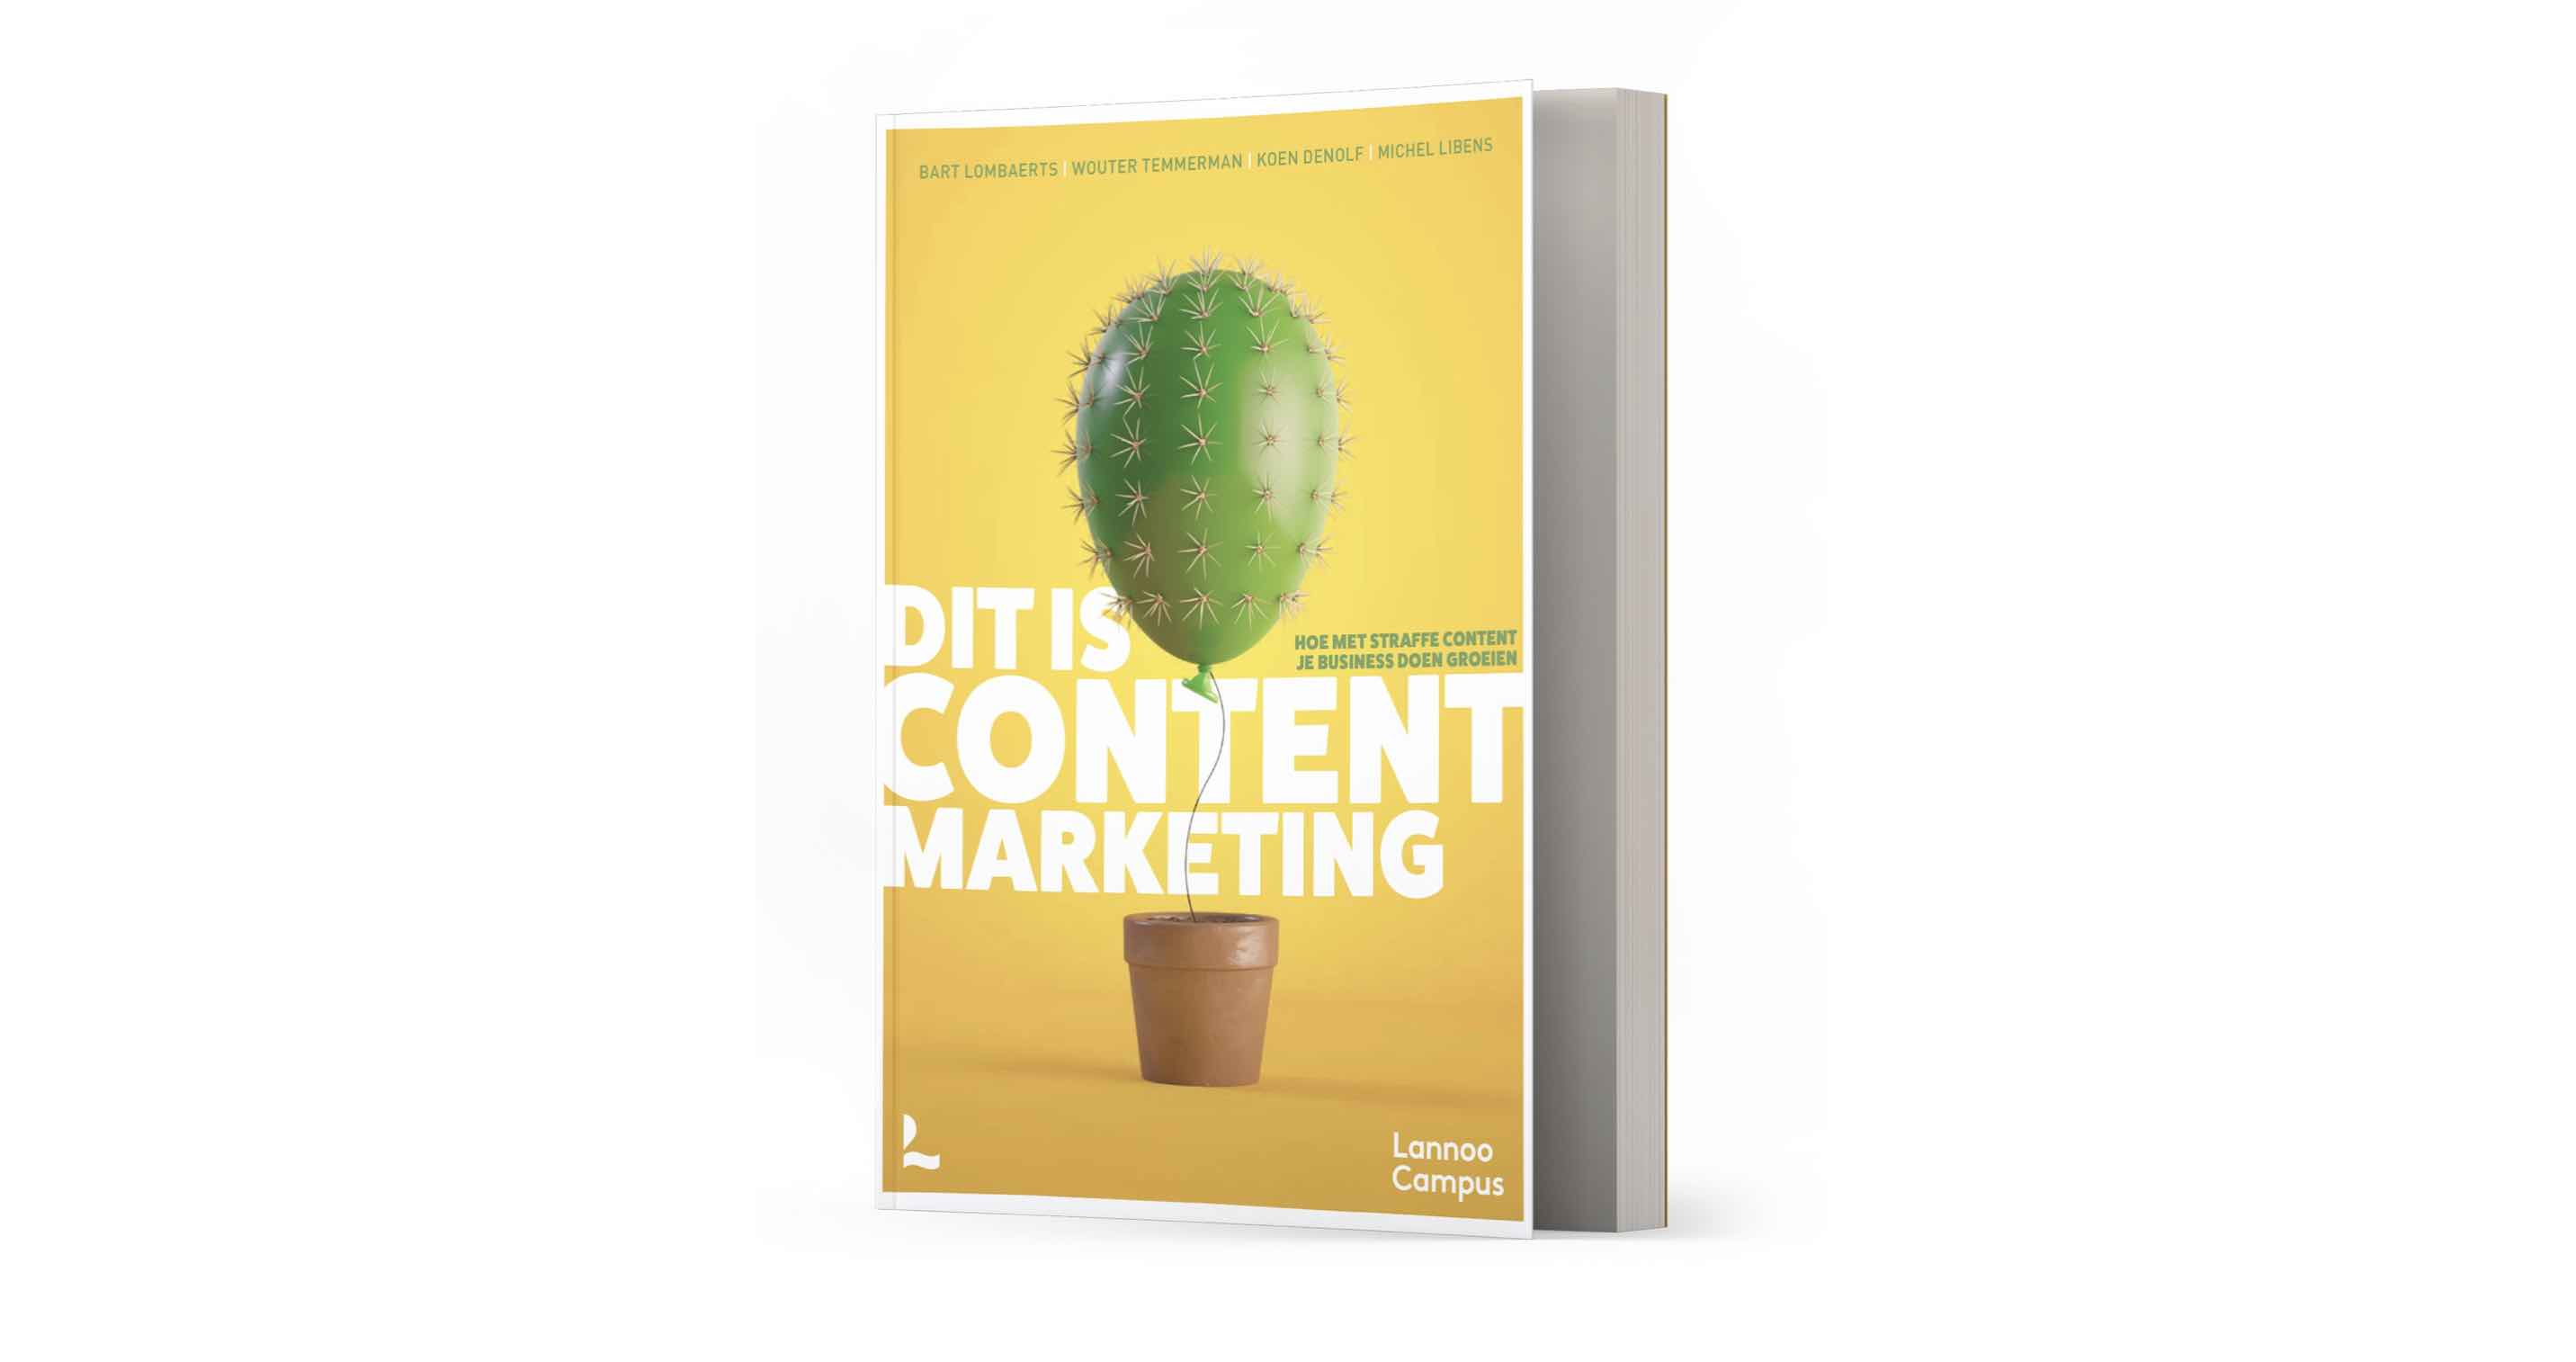 'Dit is content marketing' is Marketing Book of the Year